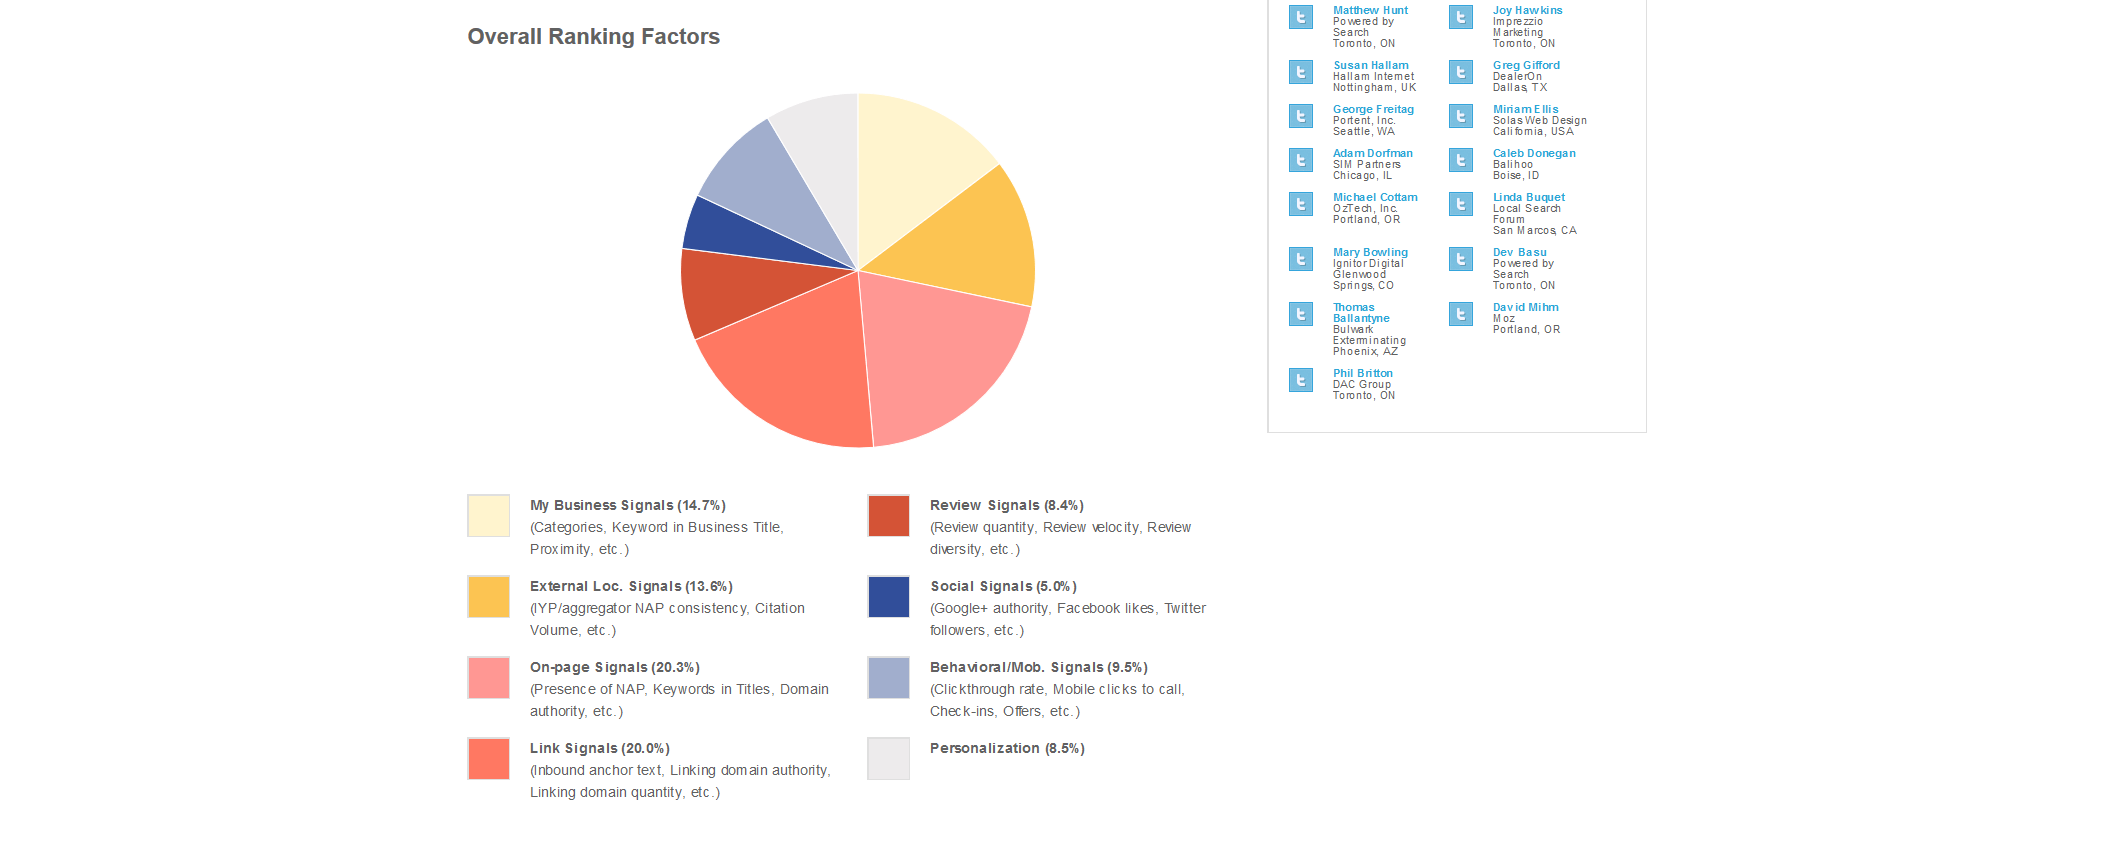 Local Search Ranking Factors Law Firms SEO